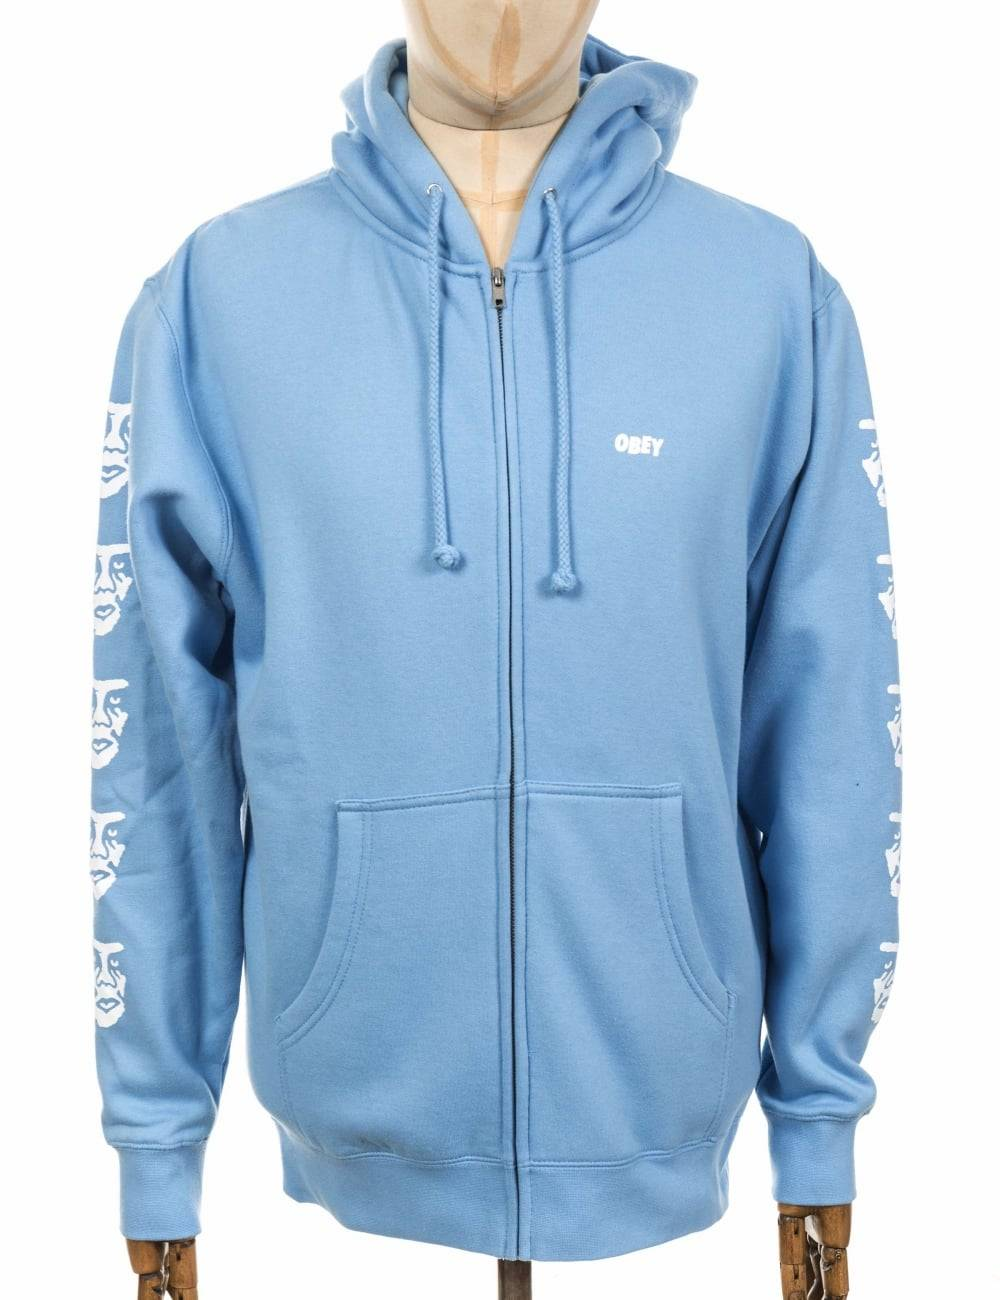 Obey Clothing Creeper 2 Zip Hooded Sweat - Powder Blue Size: X Large,